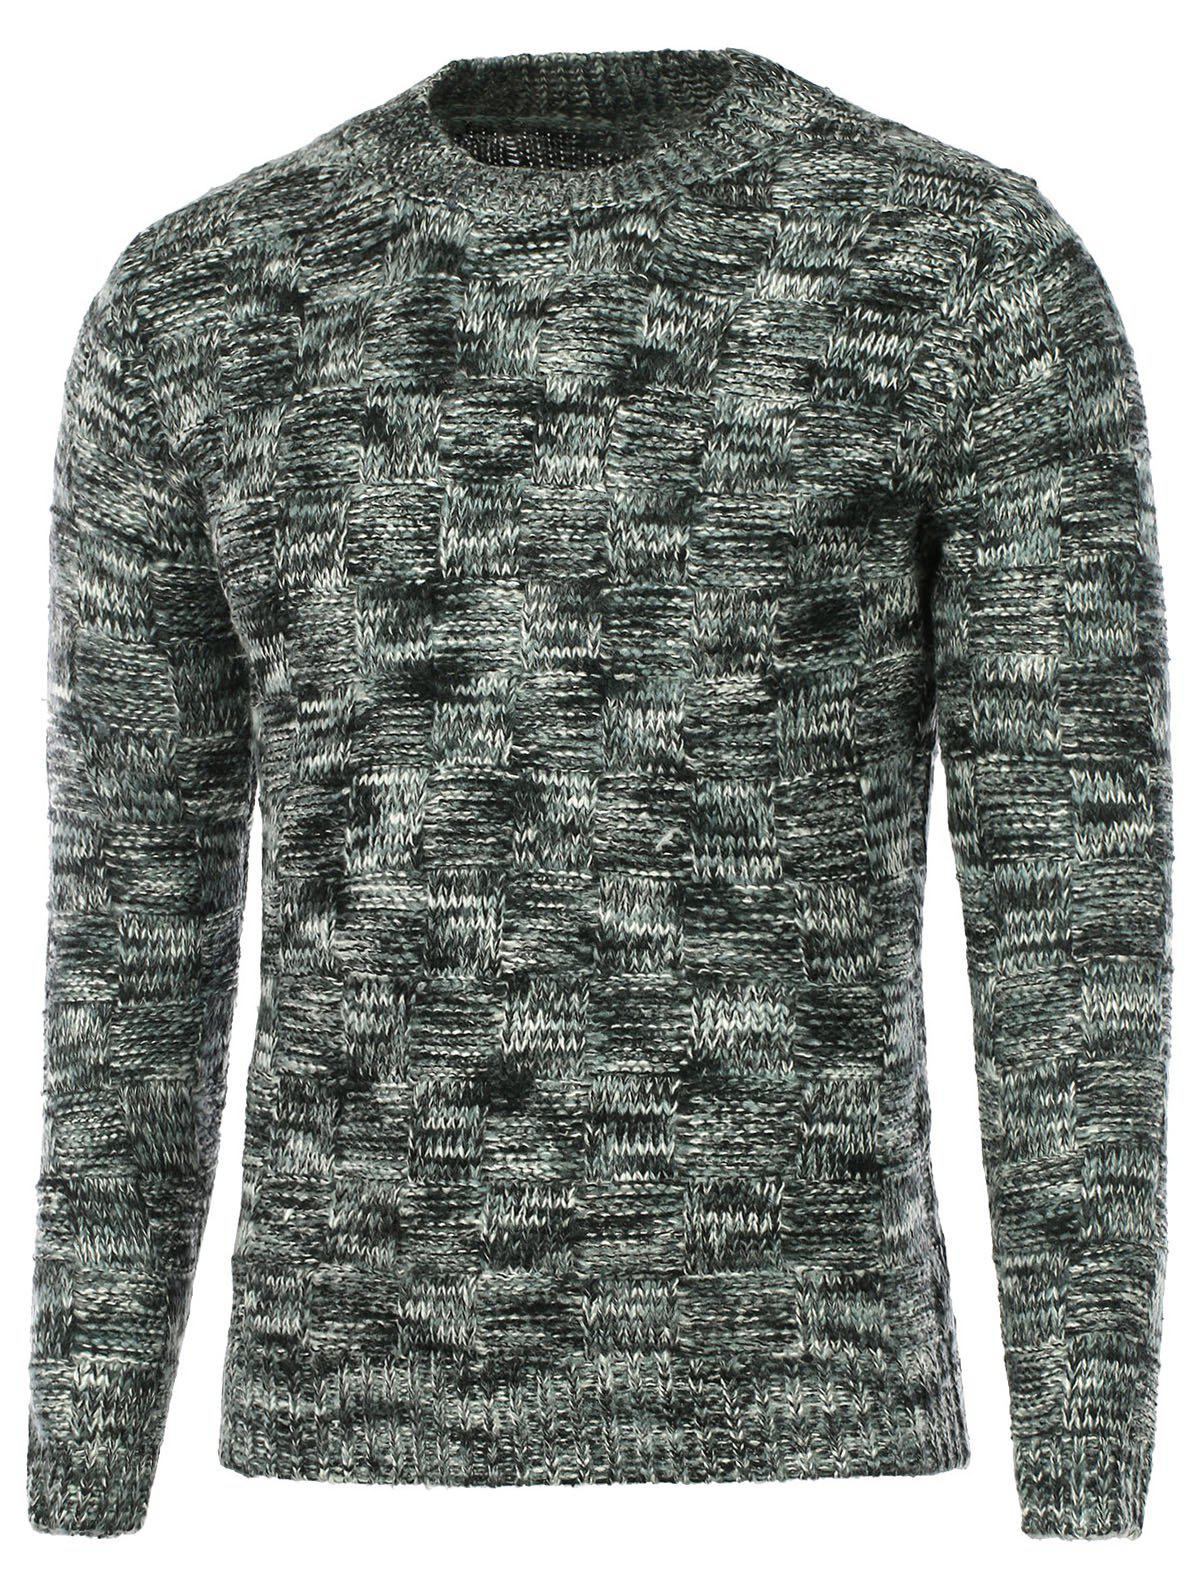 Crew Neck Weave Pattern Knitted Sweater - BLACK M